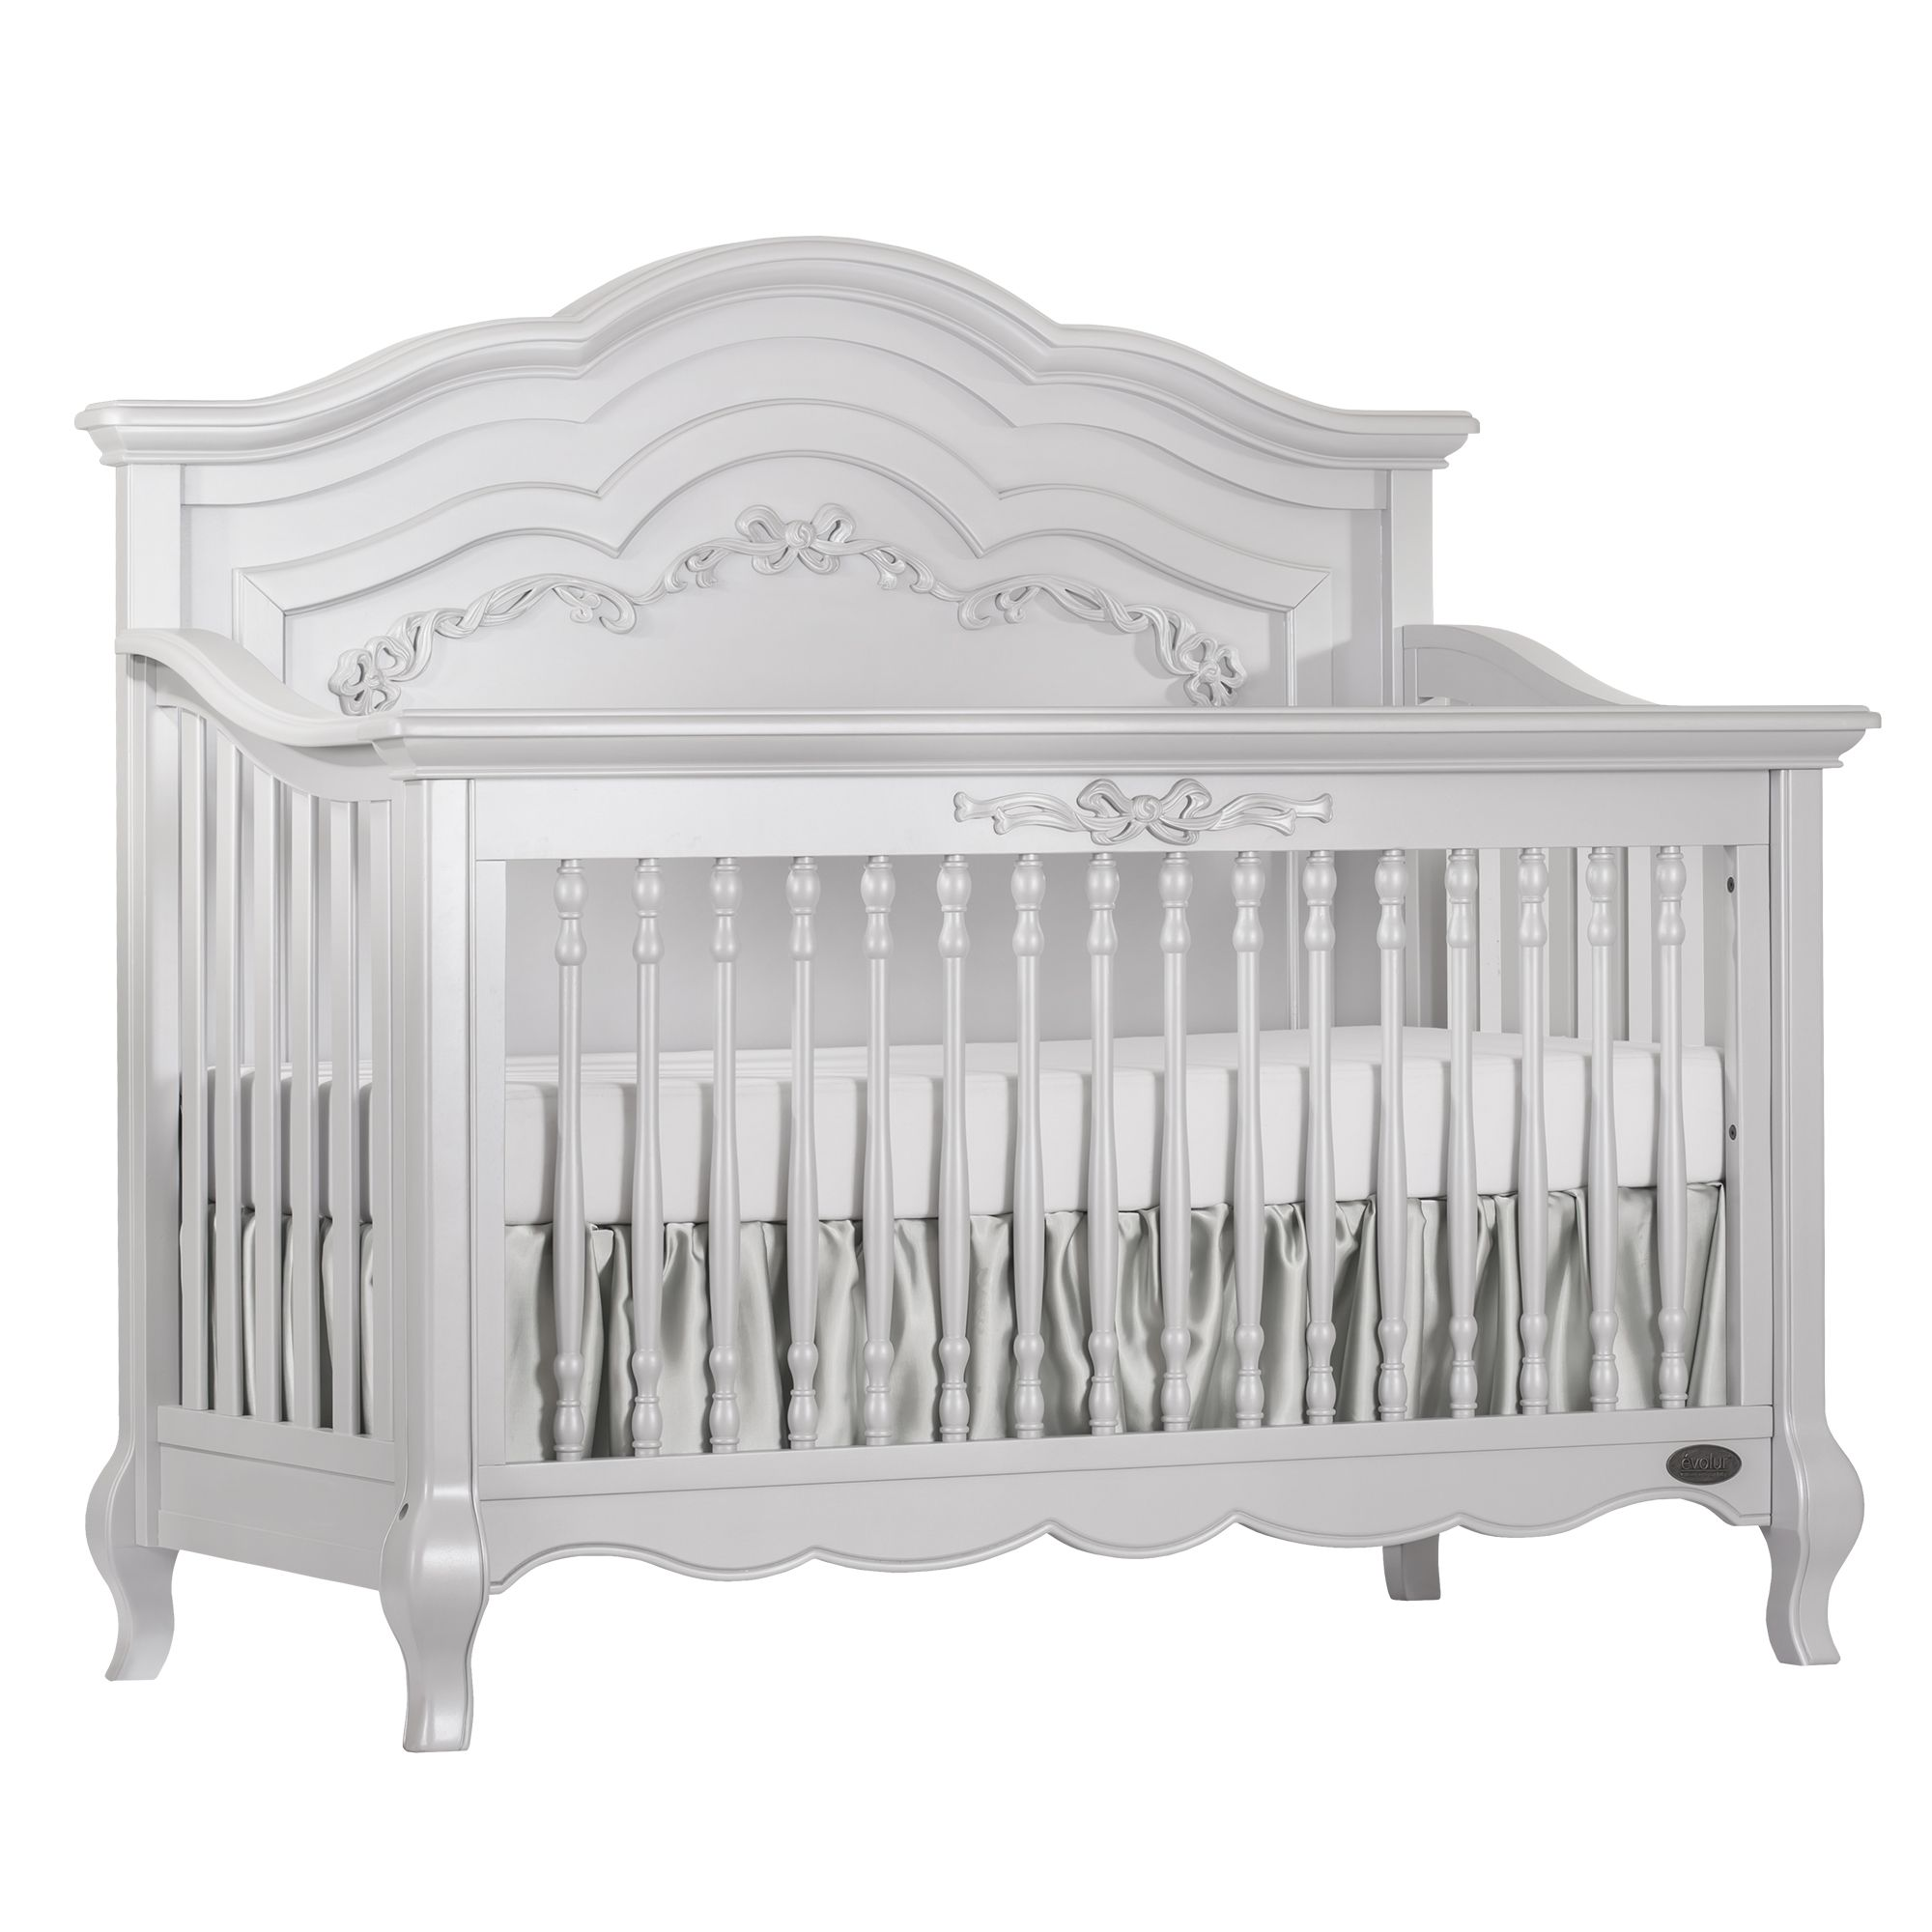 Pottery barn kids sleigh crib - You Ll Love The Aurora 4 In 1 Convertible Crib At Wayfair Ca Great Deals On All Baby Kids Products With Free Shipping On Most Stuff Even The Big Stuff